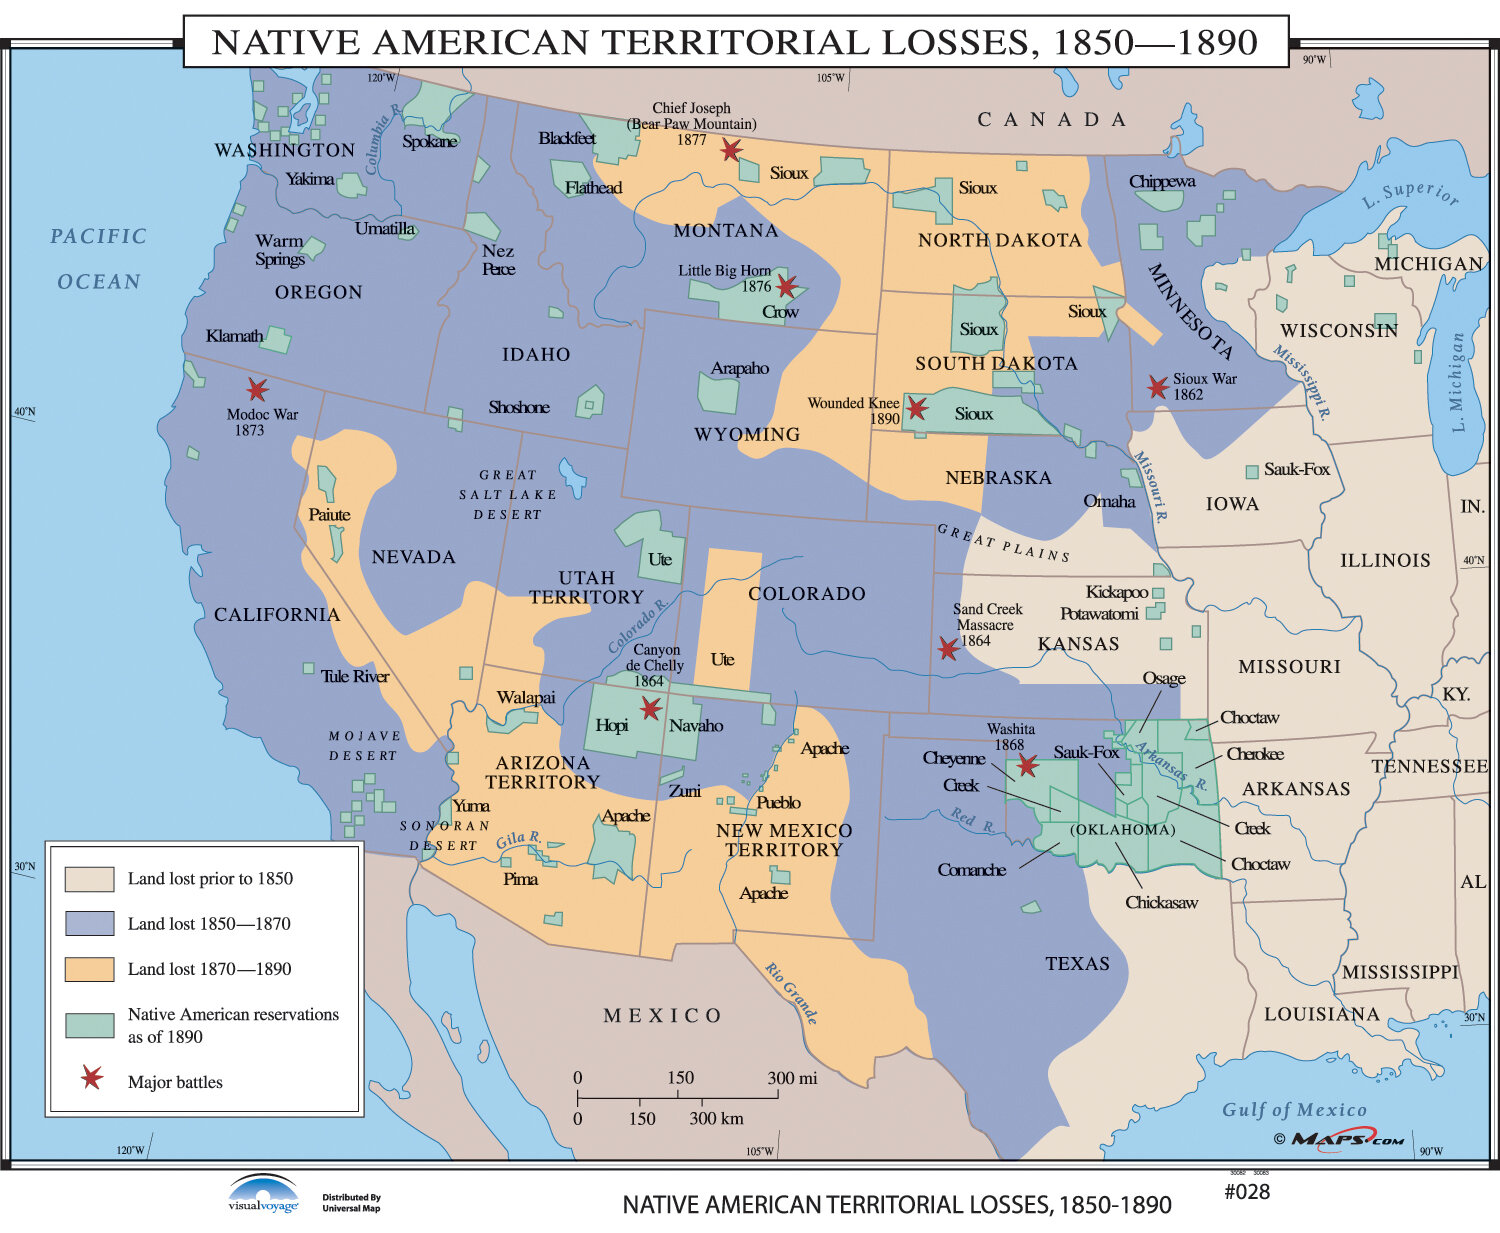 Universal Map U.S. History Wall Maps - Native American Territorial ...